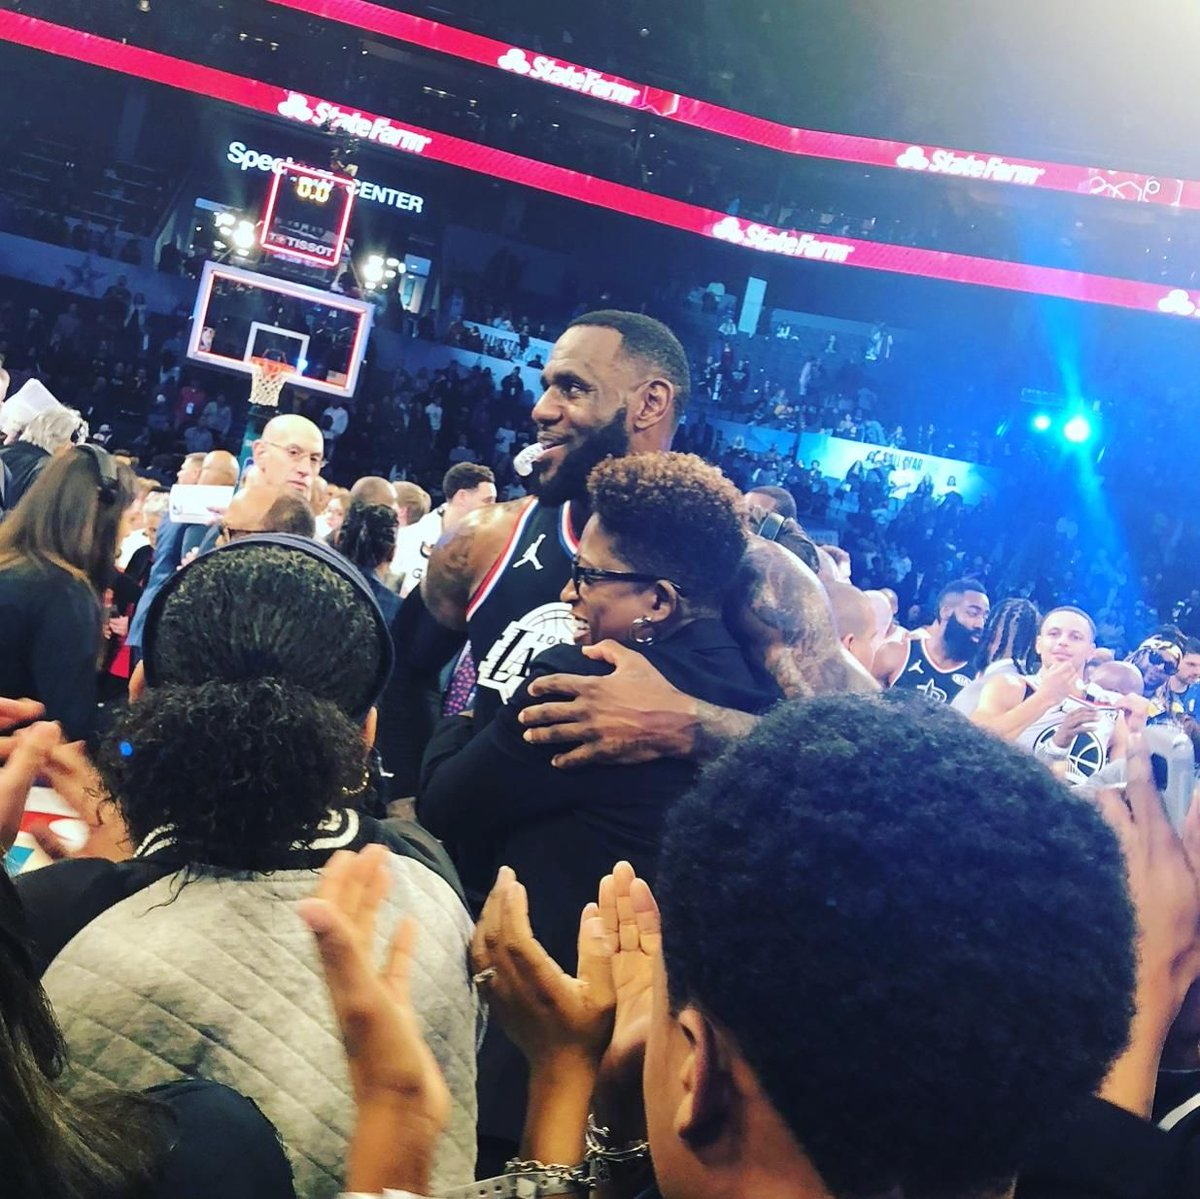 From all of us at Right Moves for Youth, thank you NBA, NBA Cares, NBAPA, LeBron James, and Team LeBron! Because of you, we will continue to build better lives. #atalltimes